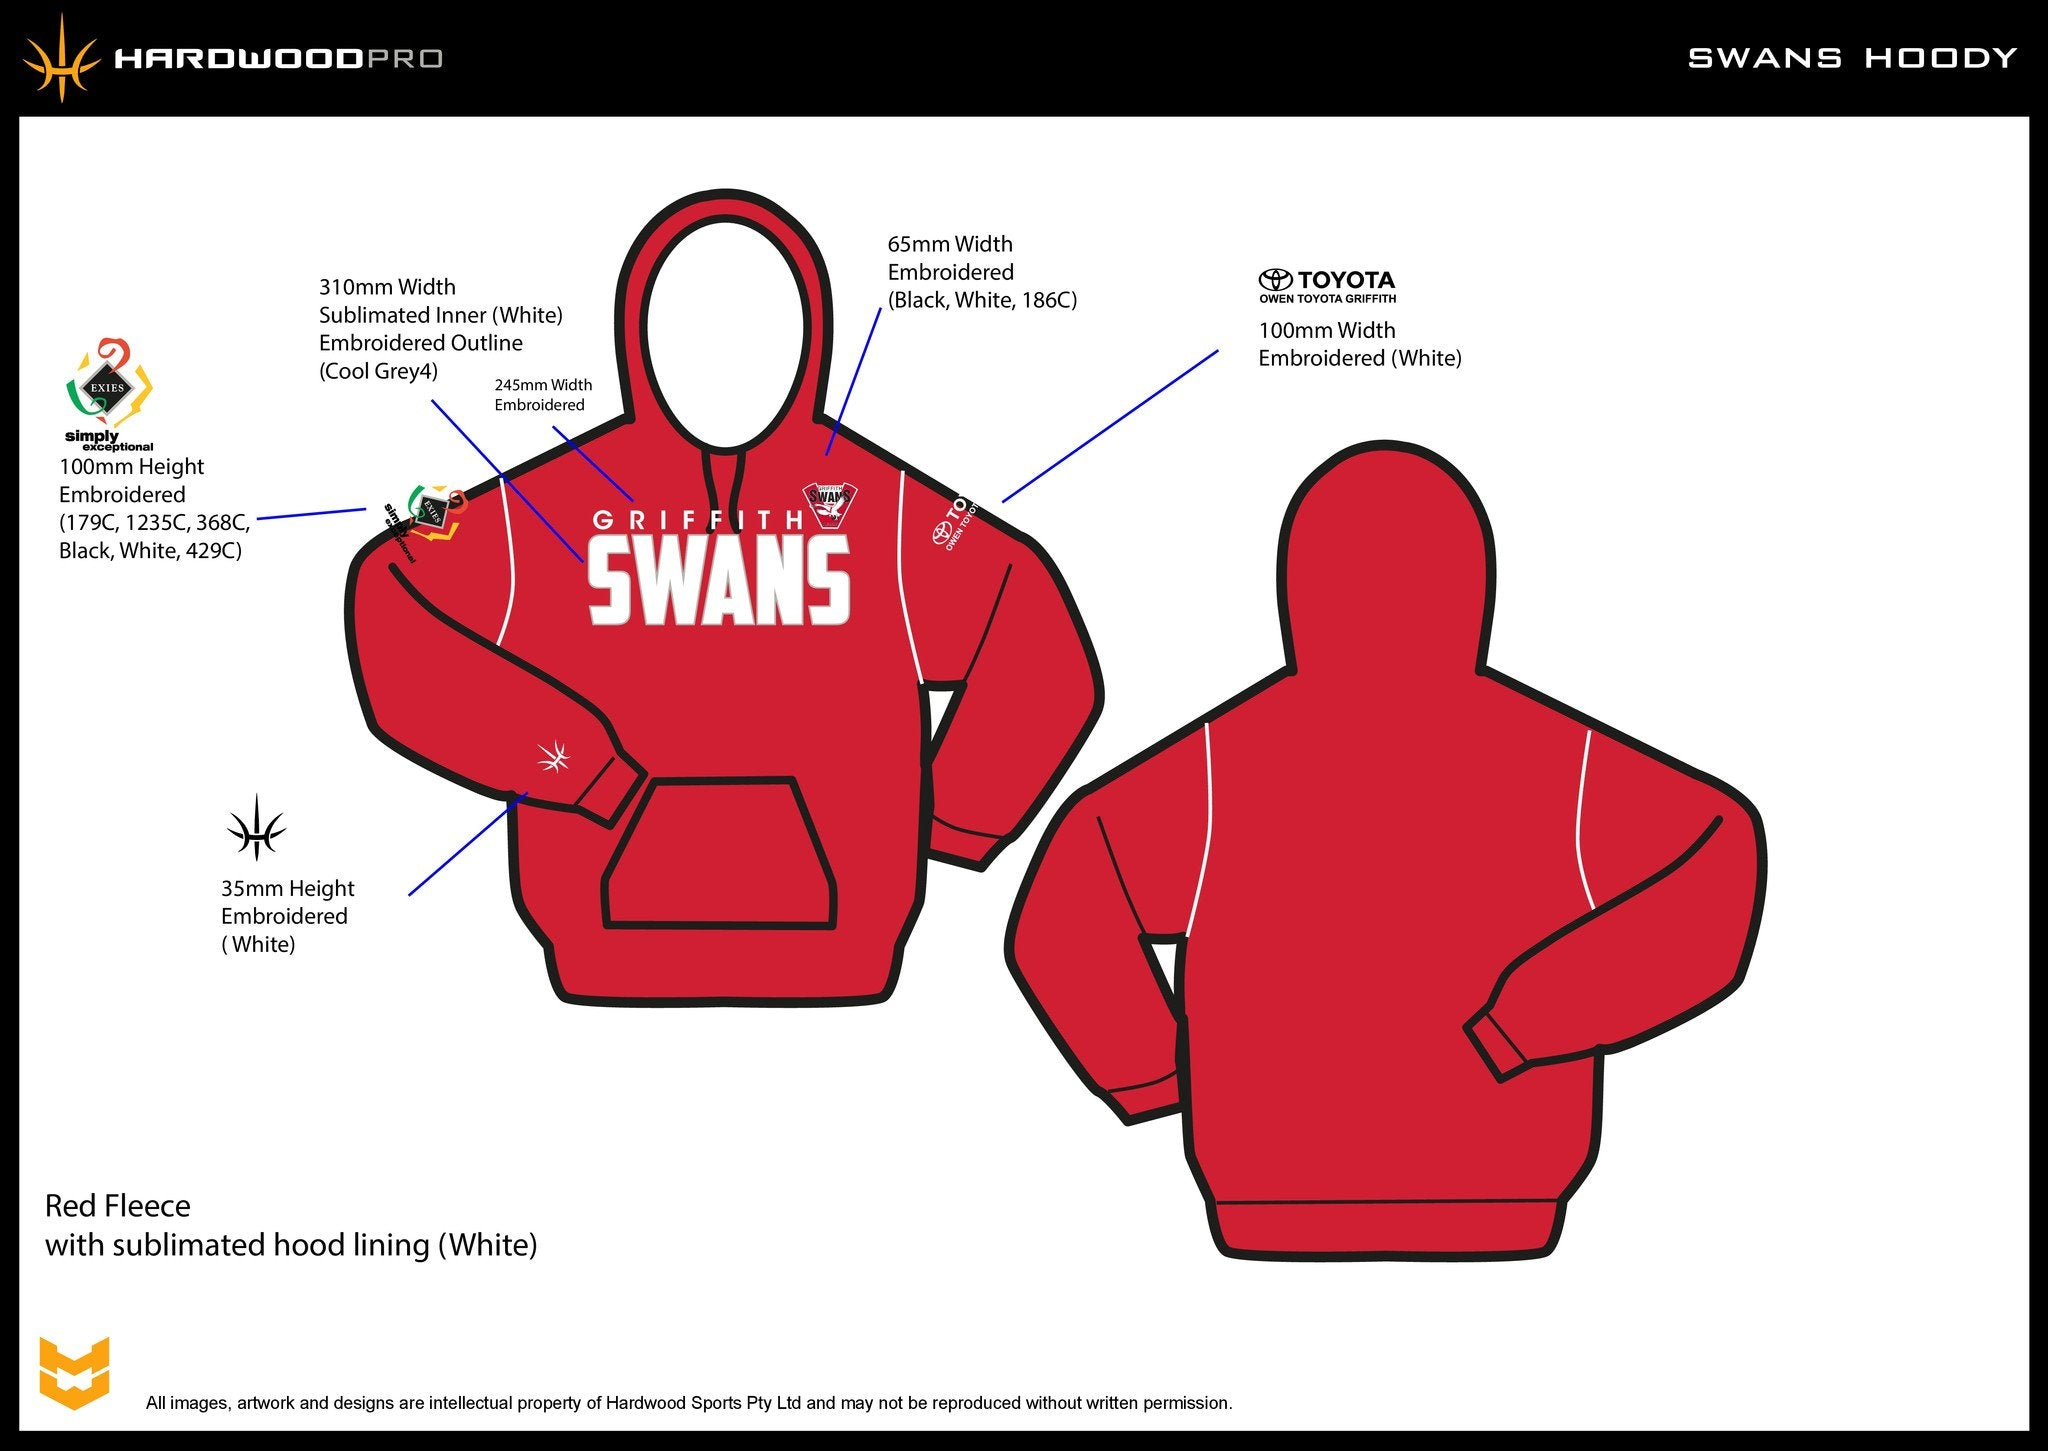 Griffith Swans Hoodie